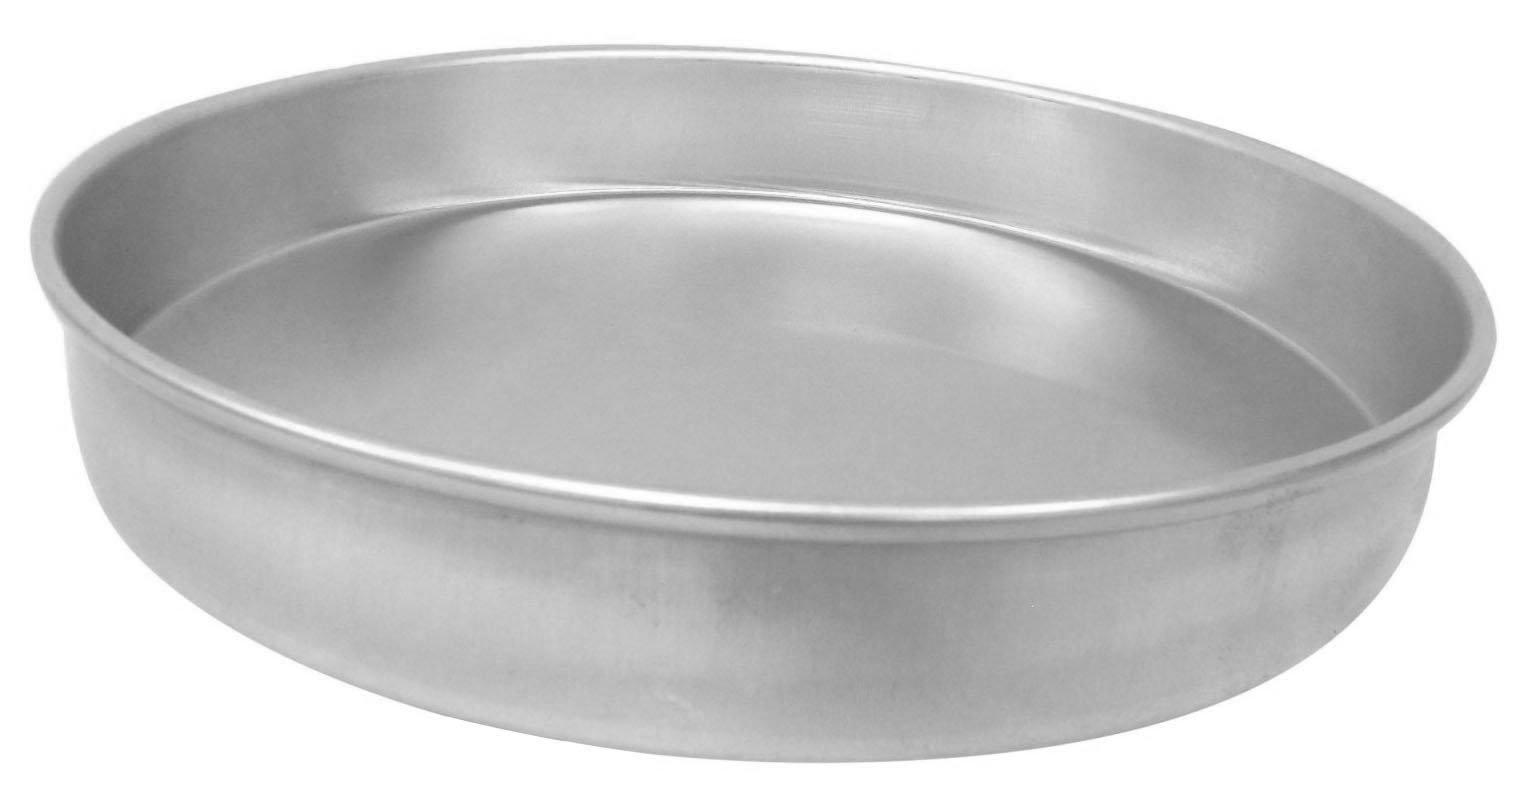 Allied Metal CP11X2 Hard Aluminum Pizza/Cake Pan, Straight Sided, 11 by 2-Inch